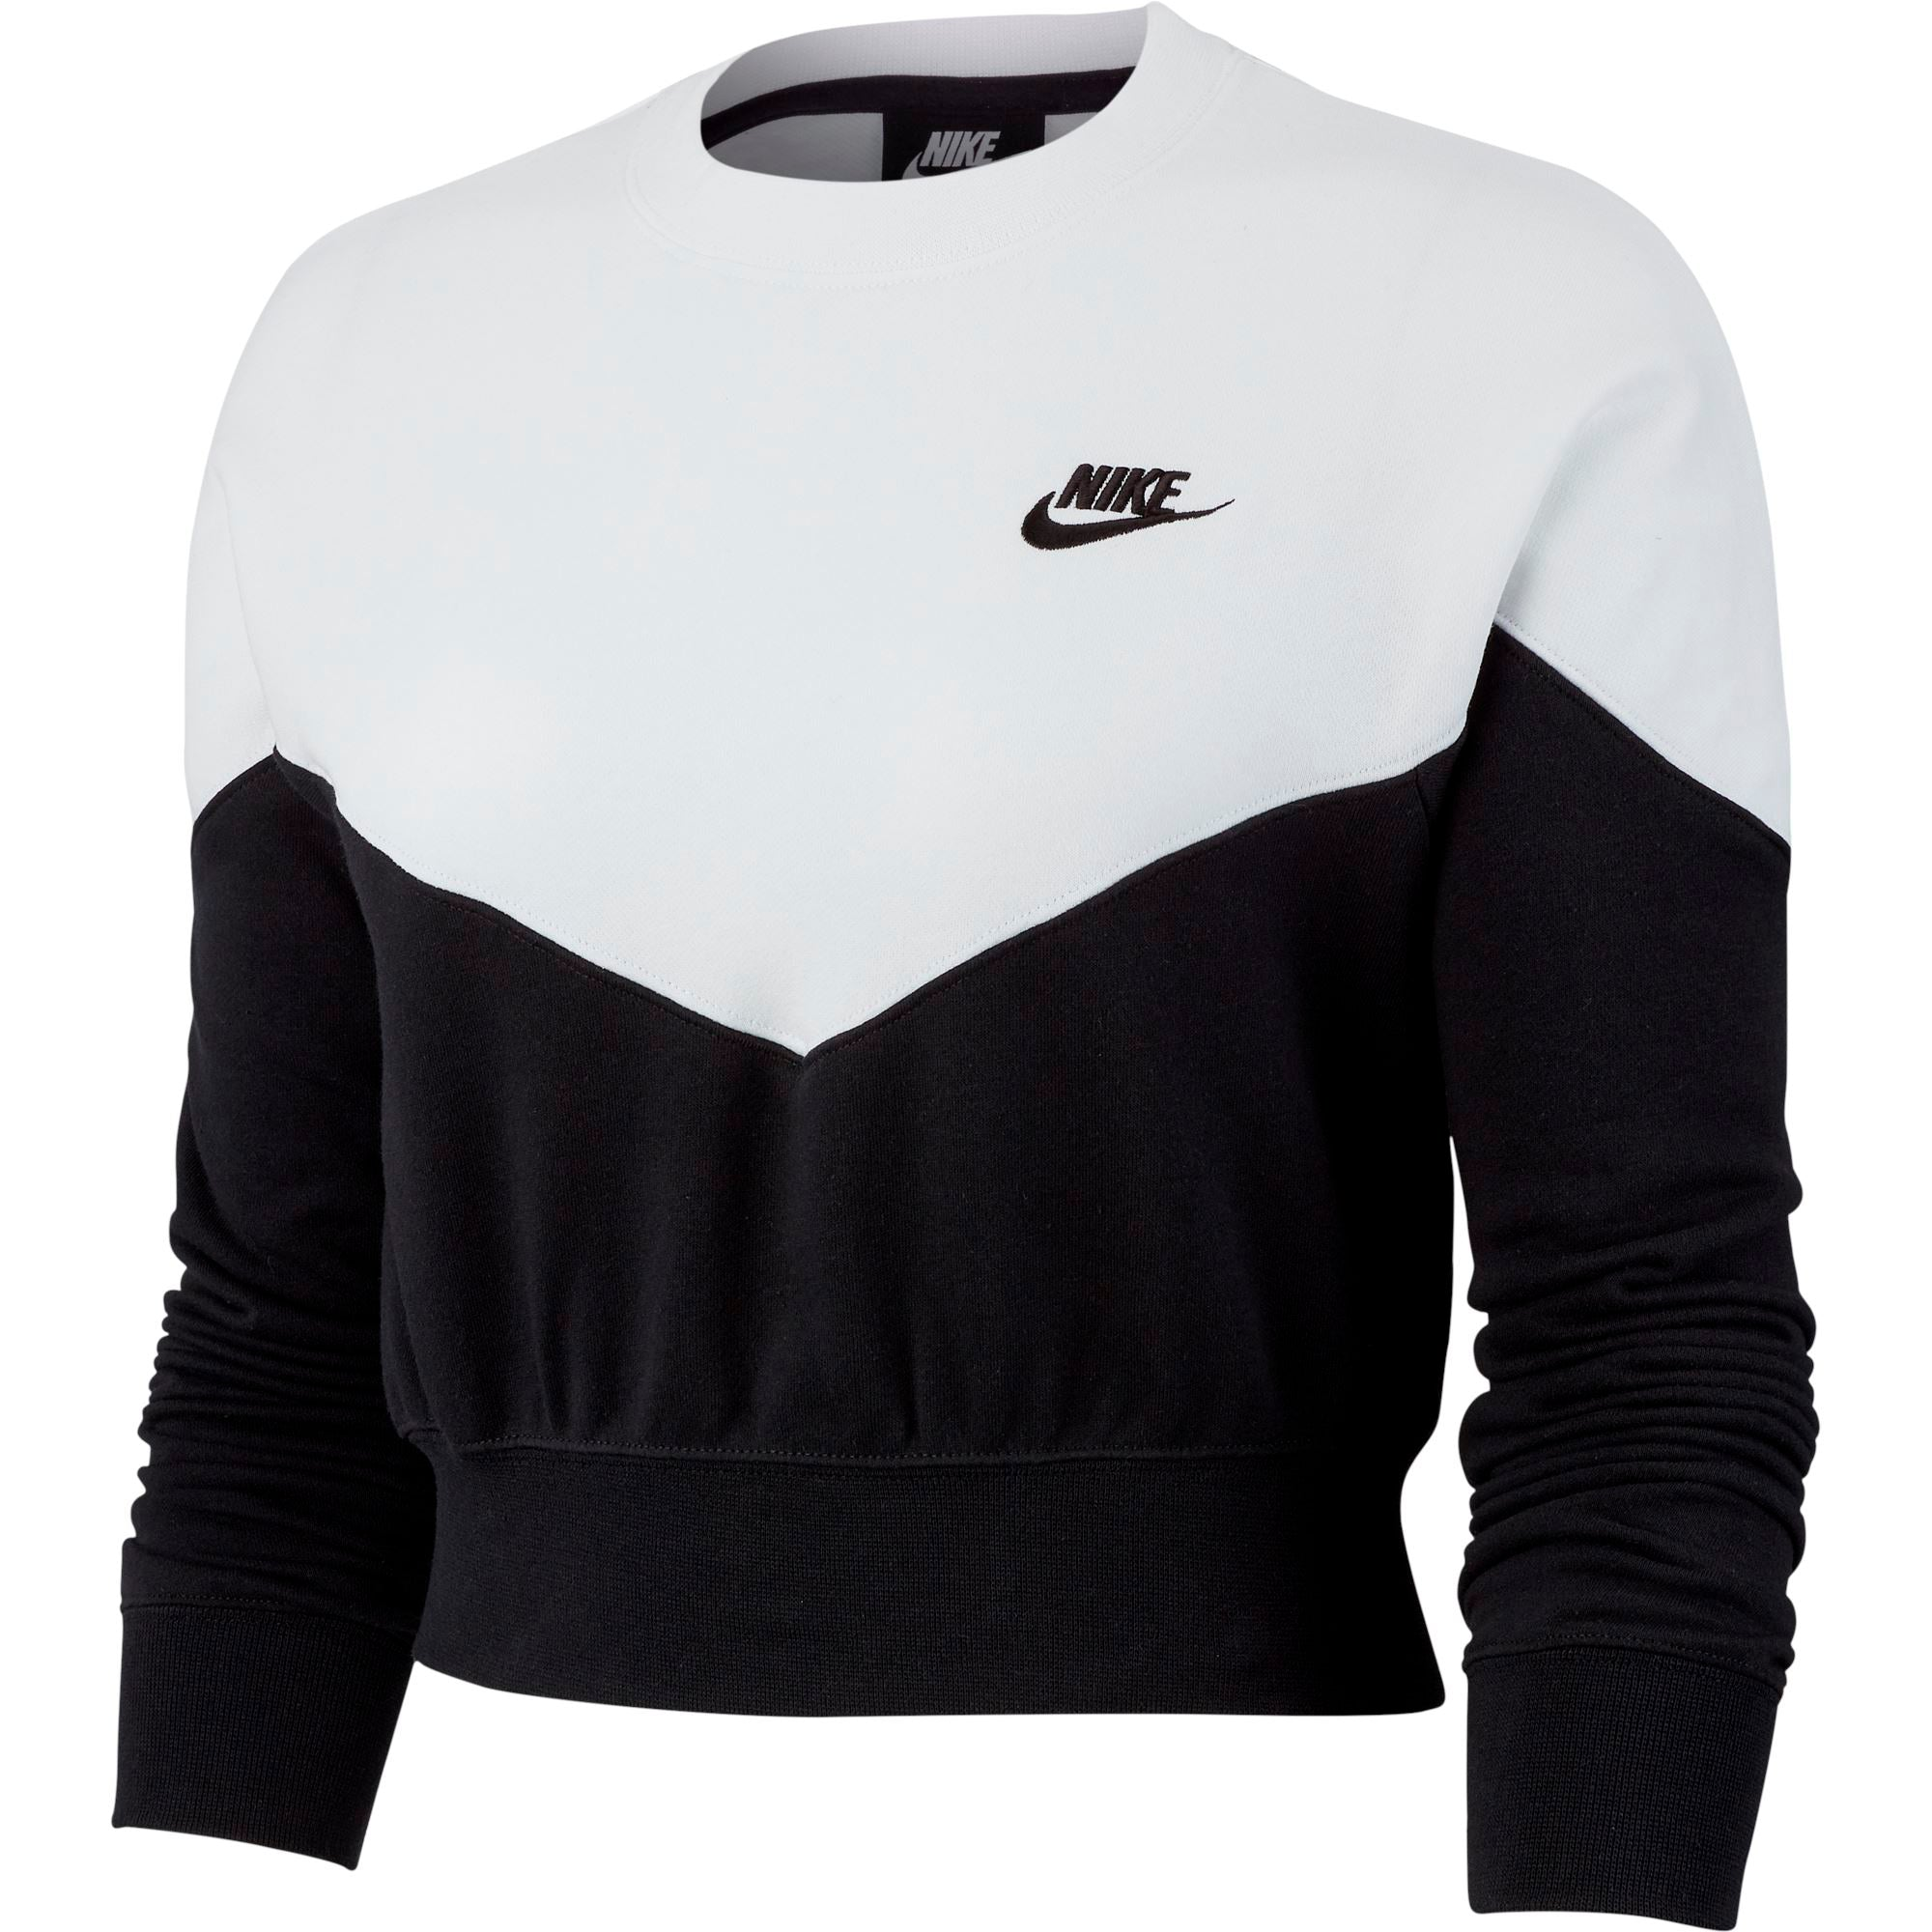 Nike Womens Sportswear Fleece Crew - Black/White/Black SP-ApparelFleece-Womens Nike